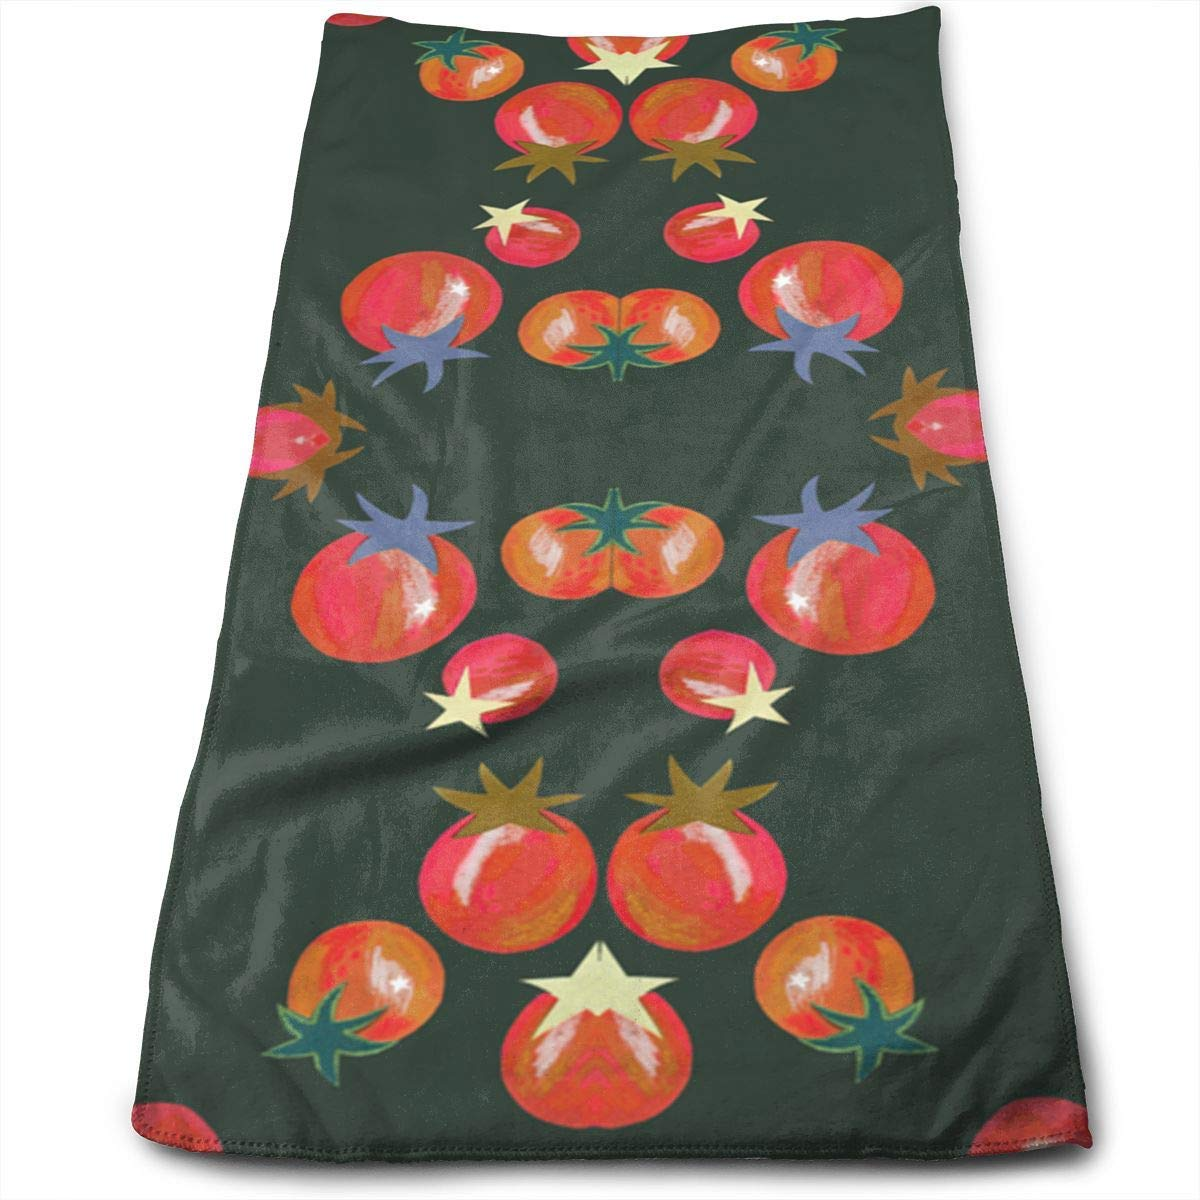 Cherry Tomato Fabric Microfiber Travel & Sports Towel, Ultra Compact, Lightweight, Absorbent and Fast Drying Towels, Ideal for Gym, Beach,Fitness, Exercise, Yoga